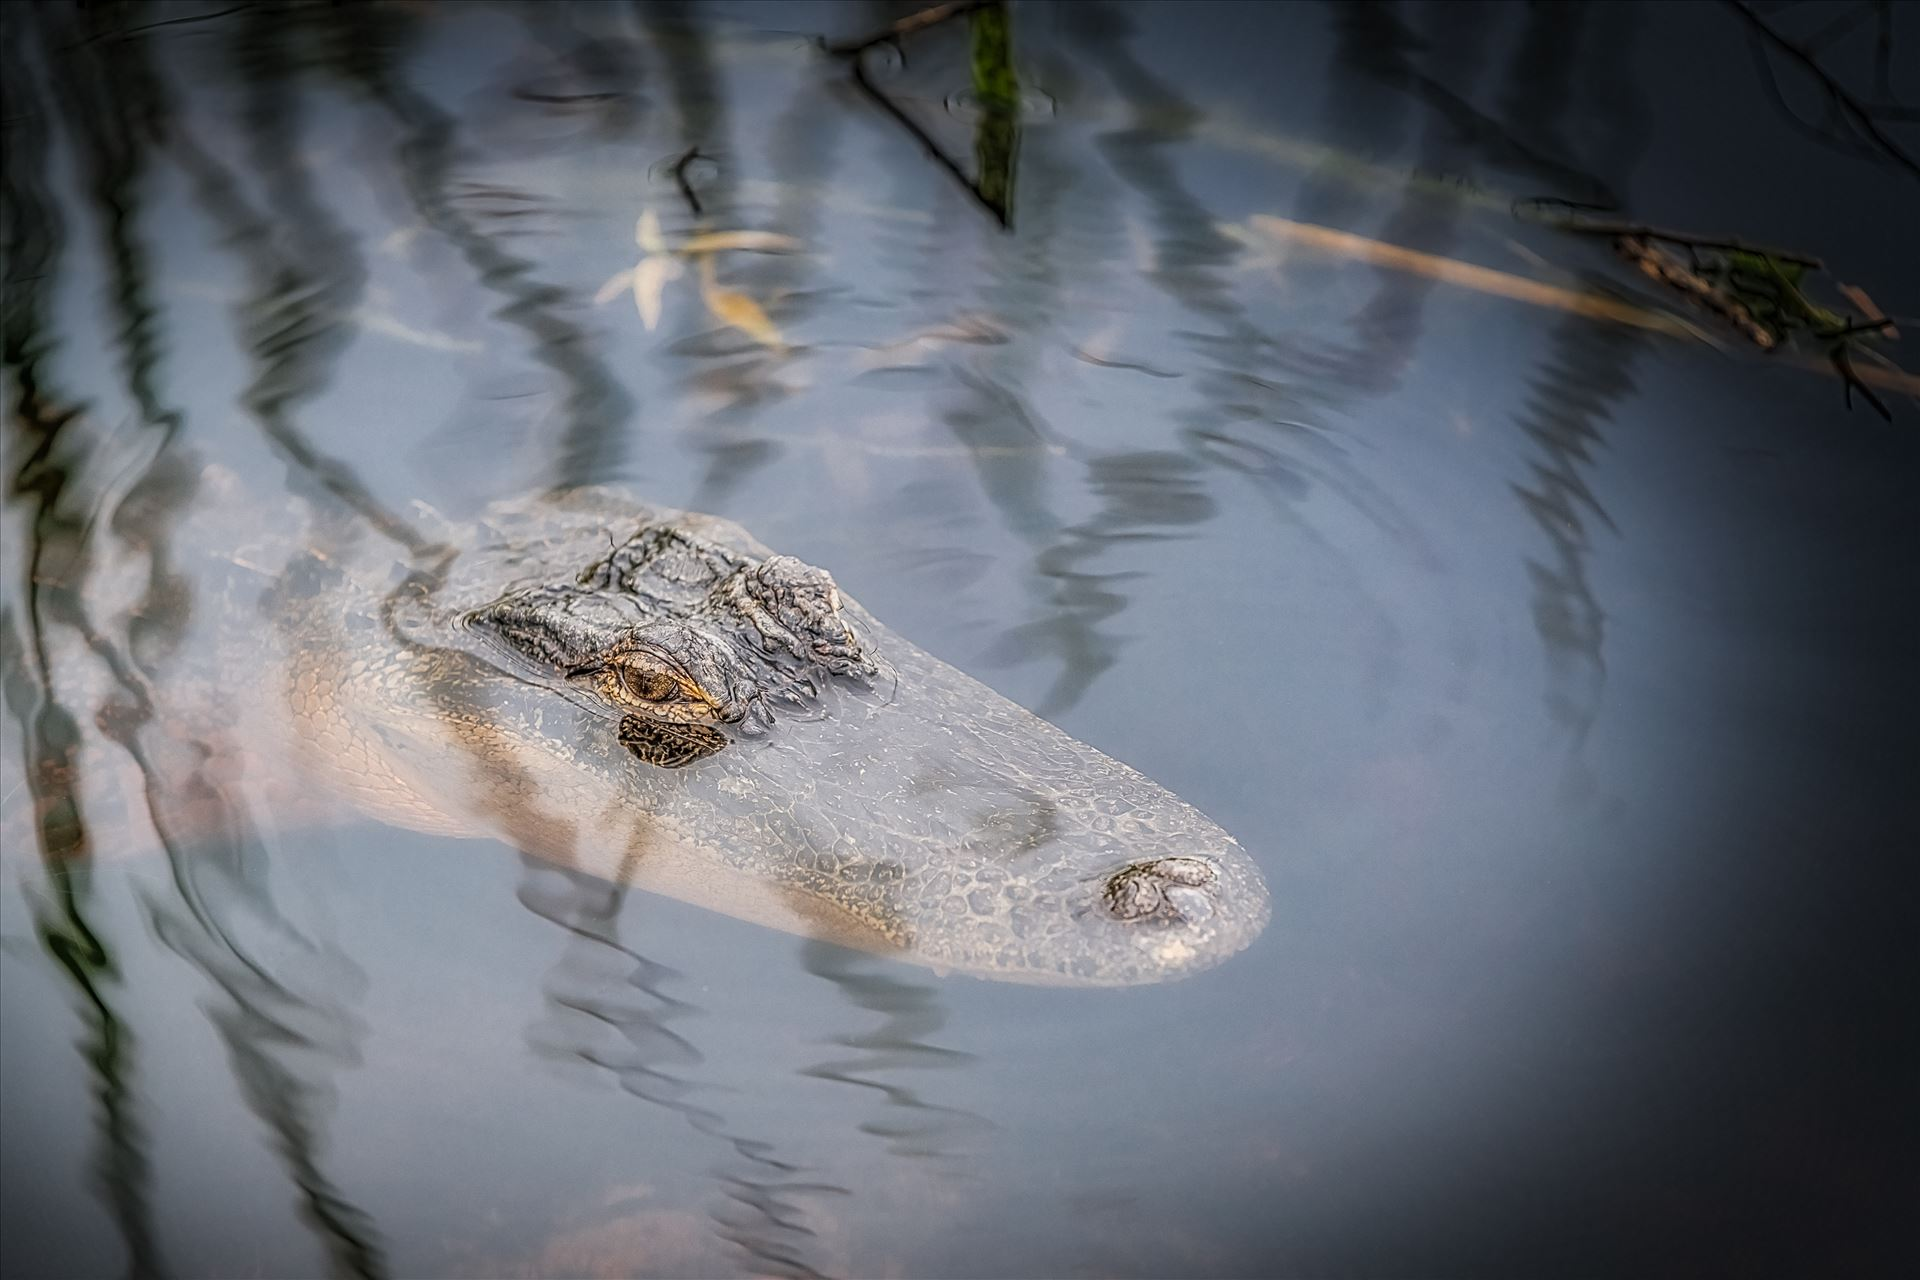 Florida Alligator - Florida Alligator in St. Andrews State Park, Panama City, Florida by Terry Kelly Photography